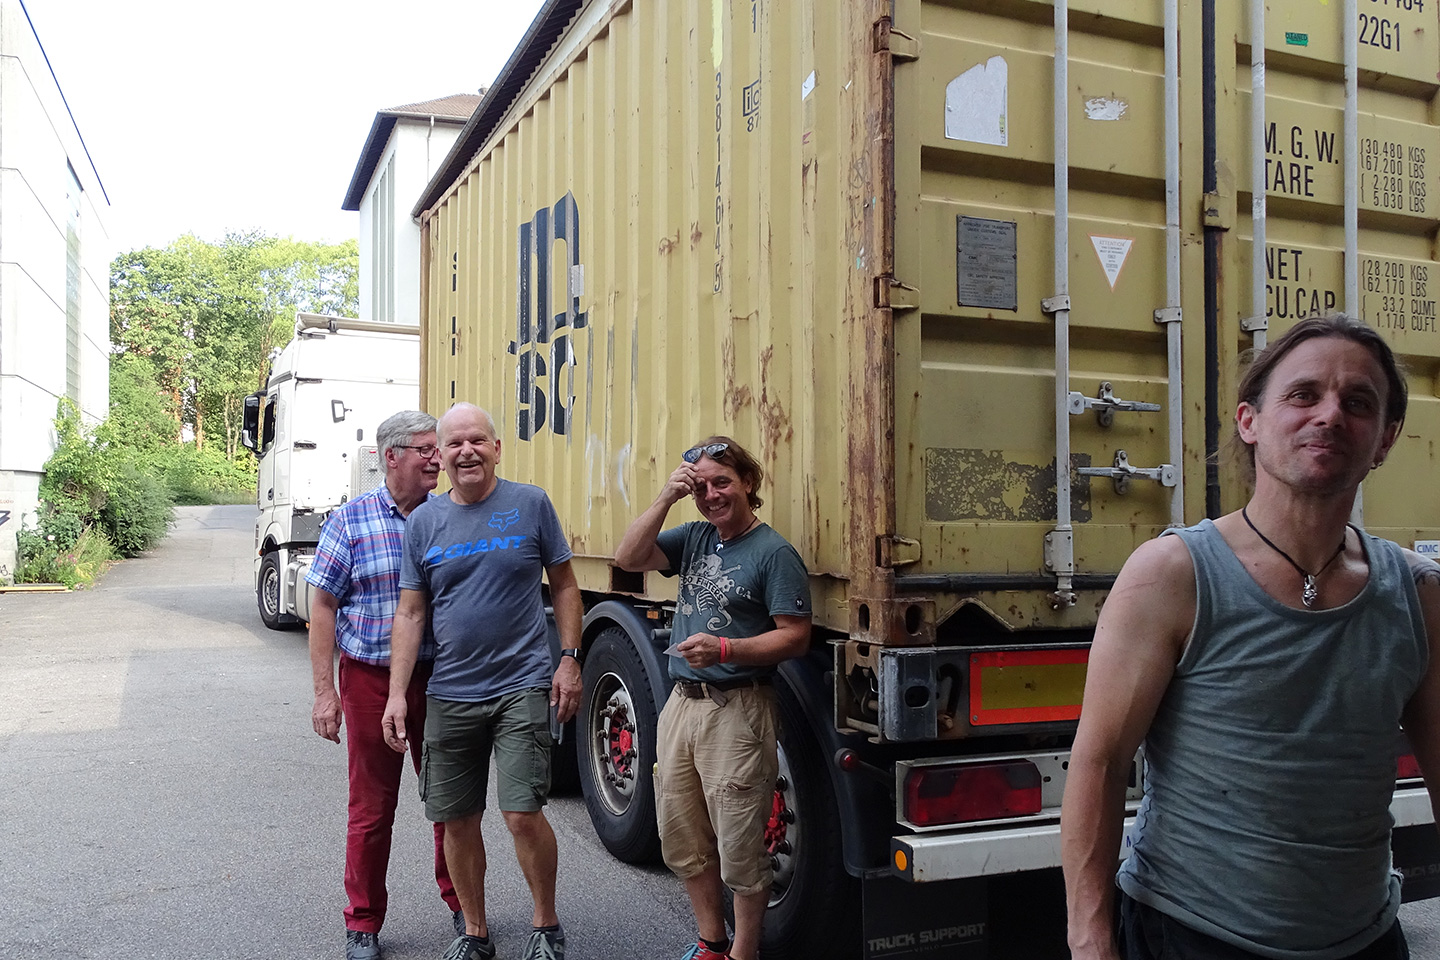 The l'Unique Foundation team just finsihed loading everything in the container ready to leave for Kathmandu